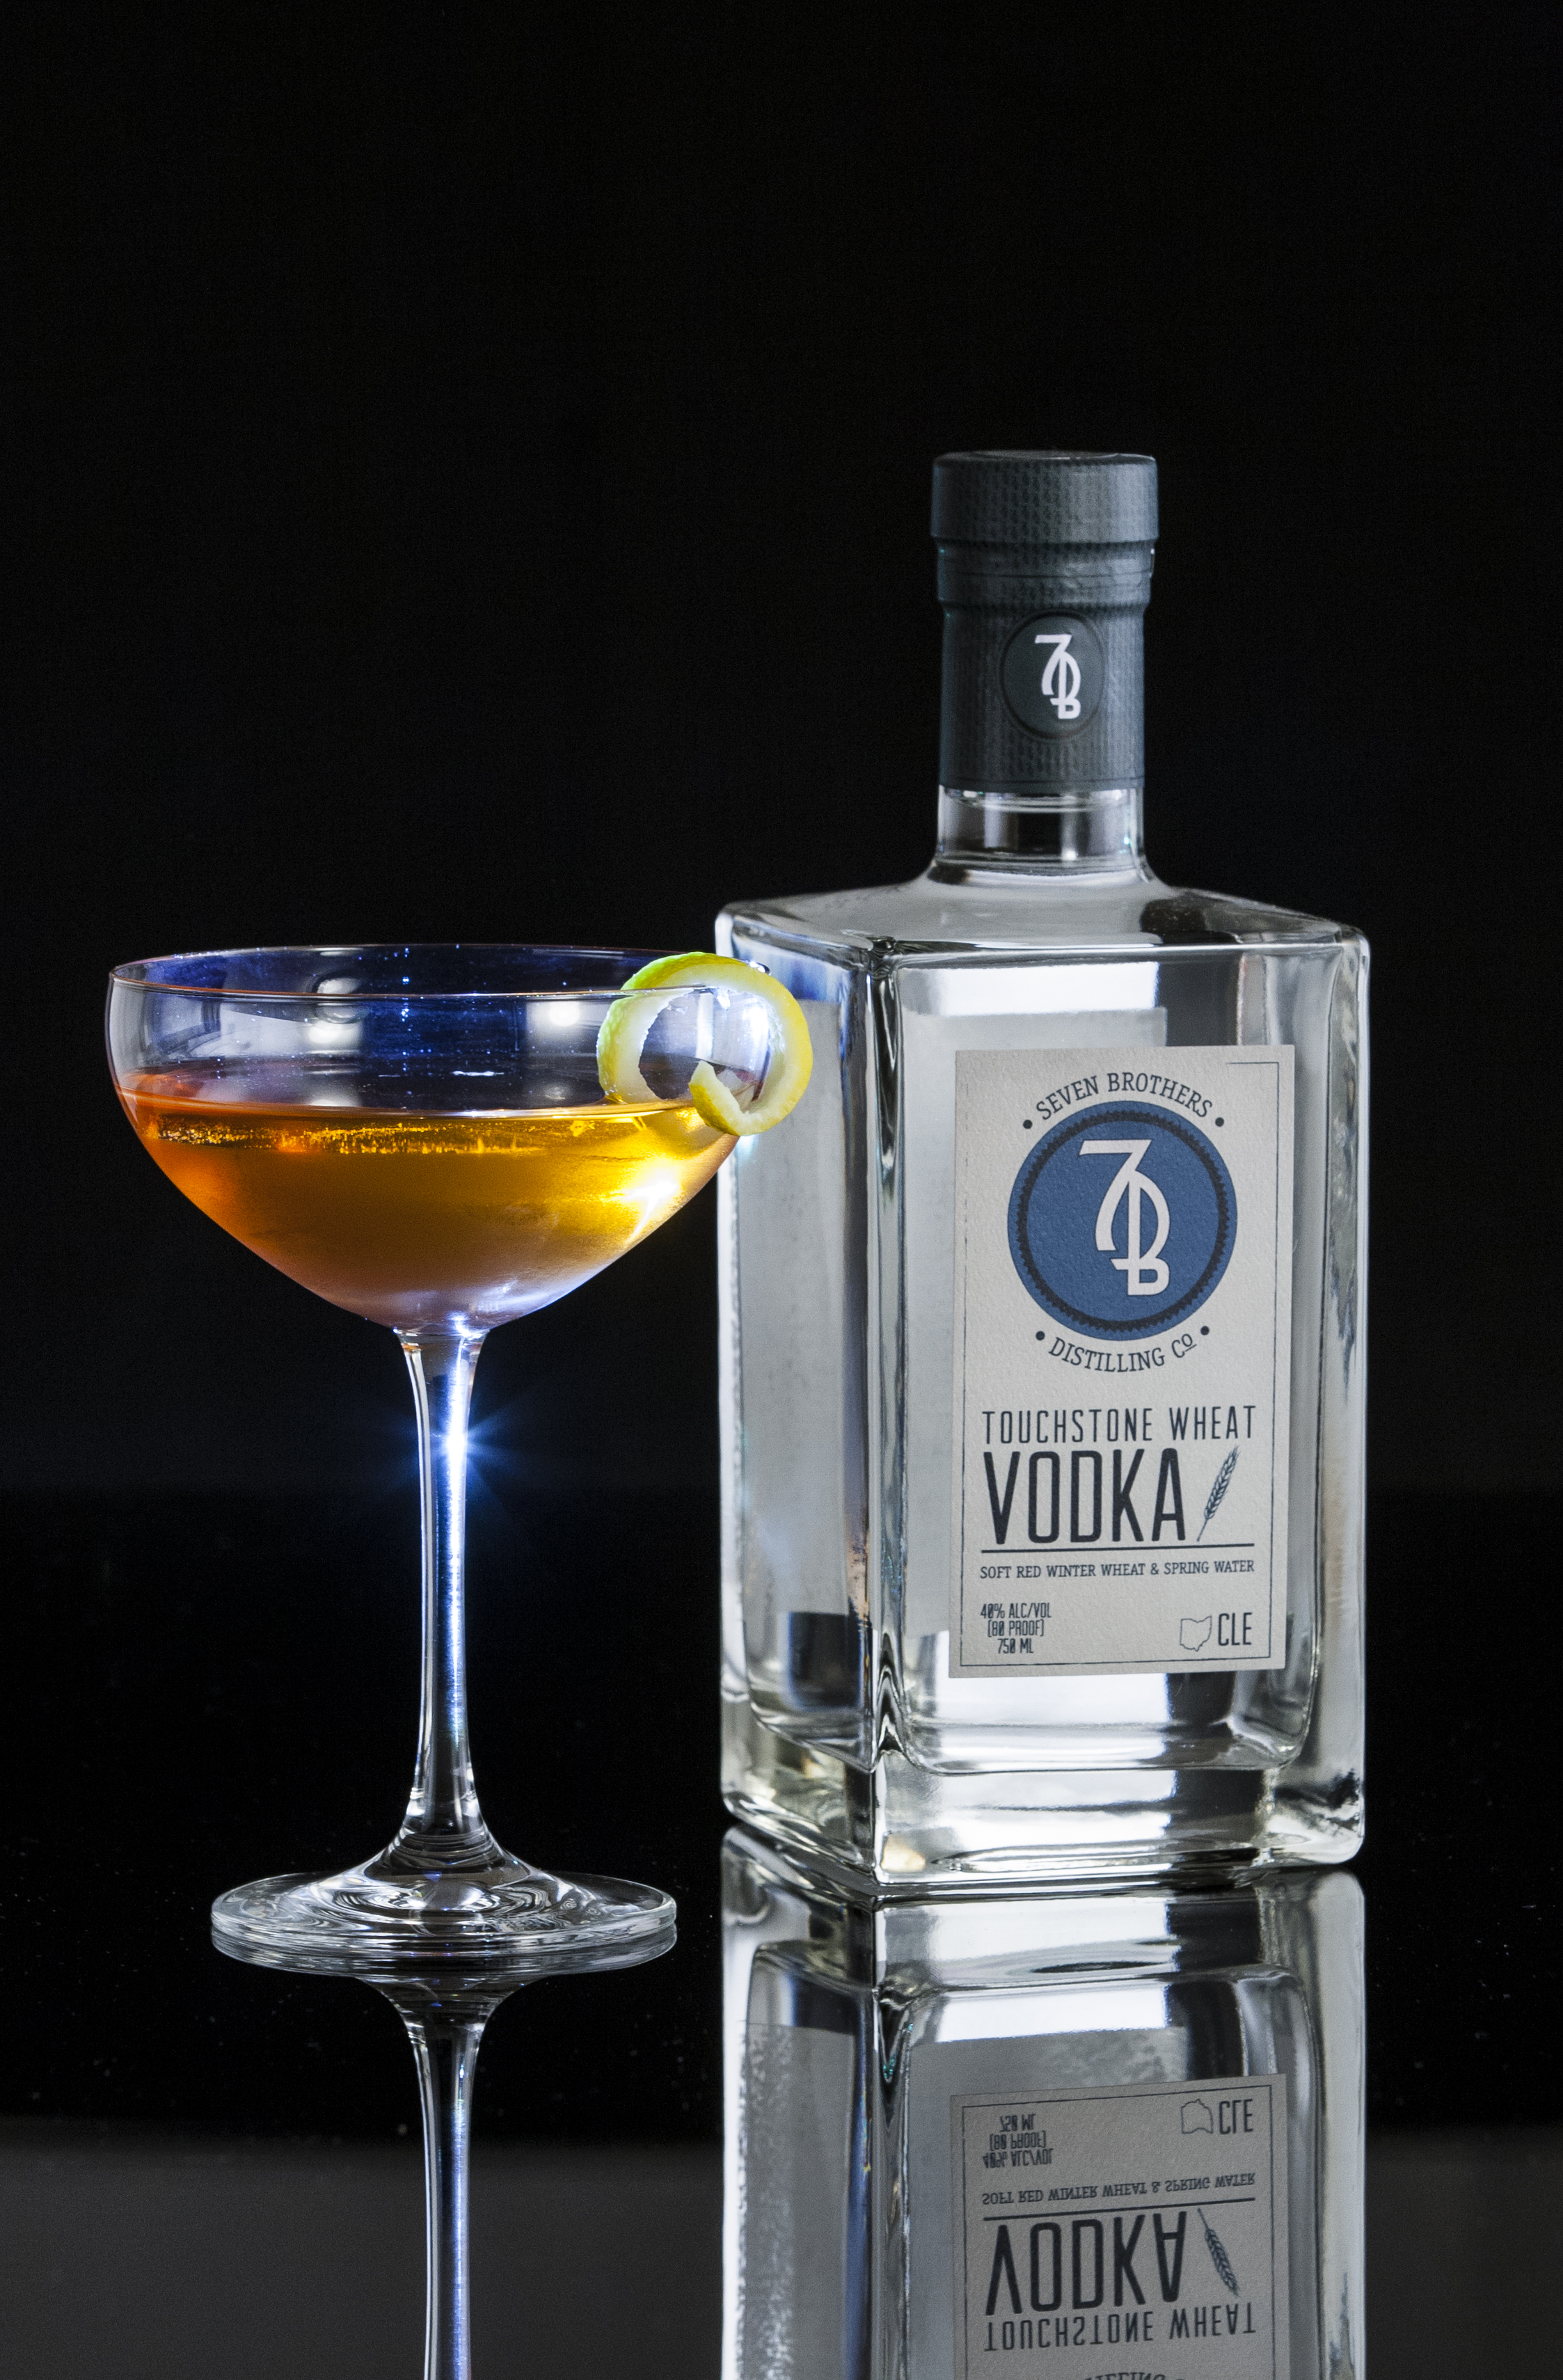 THE QUEEN B - 2 oz Seven Brothers Touchstone Wheat Vodka1 oz Benedictine or Yellow Charteuse2 dashes Angostura BittersCombine all ingredient in a mixing glass and stir over ice. Strain into a chilled Coupe and garnish with a lemon twist